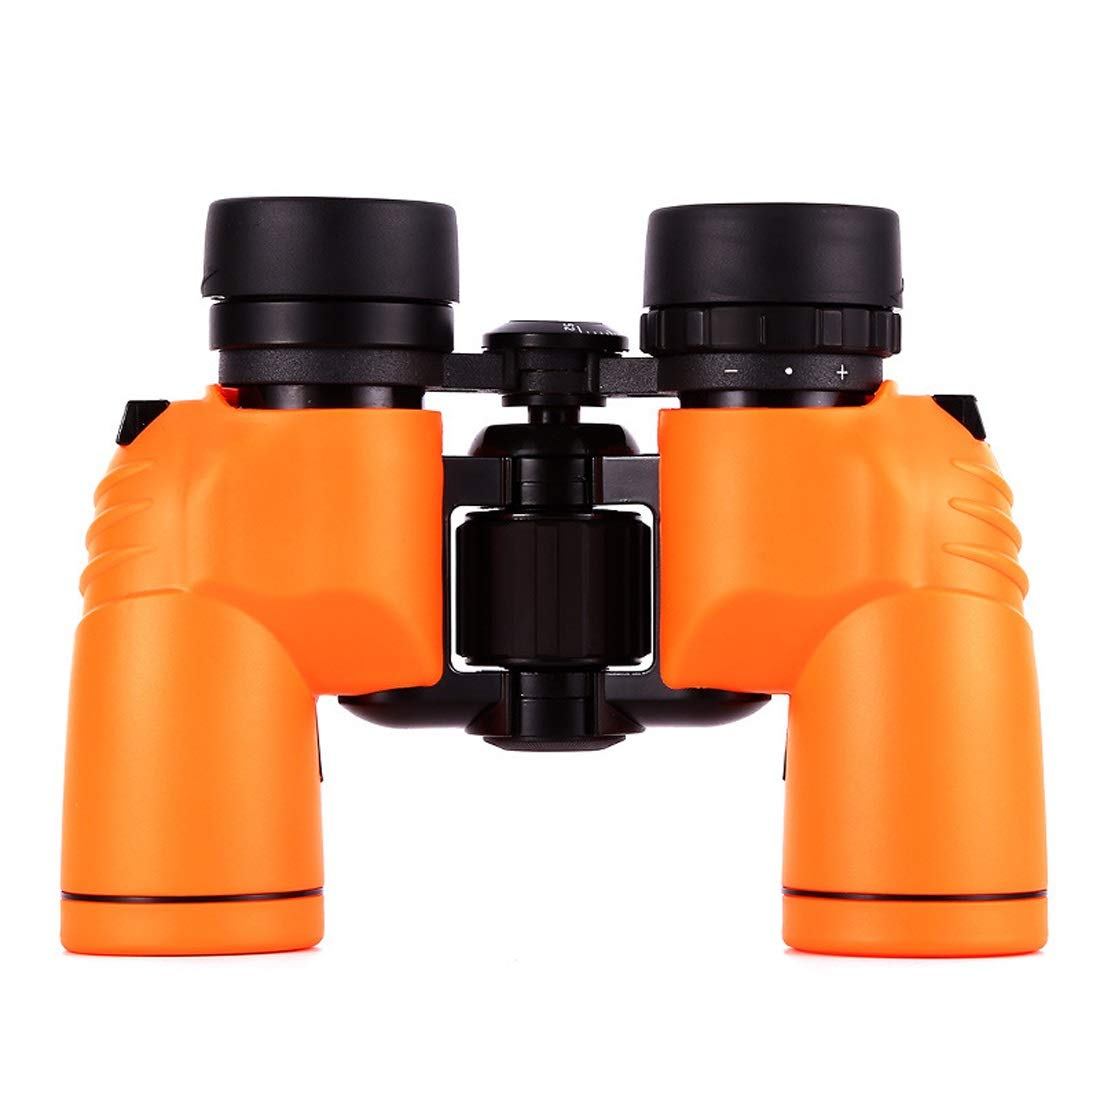 LNLW Telescope High Power More Clear and Sharp for Hunting,Hiking,Viewing Wildlife or Sports Games (Color : Orange-8X32)